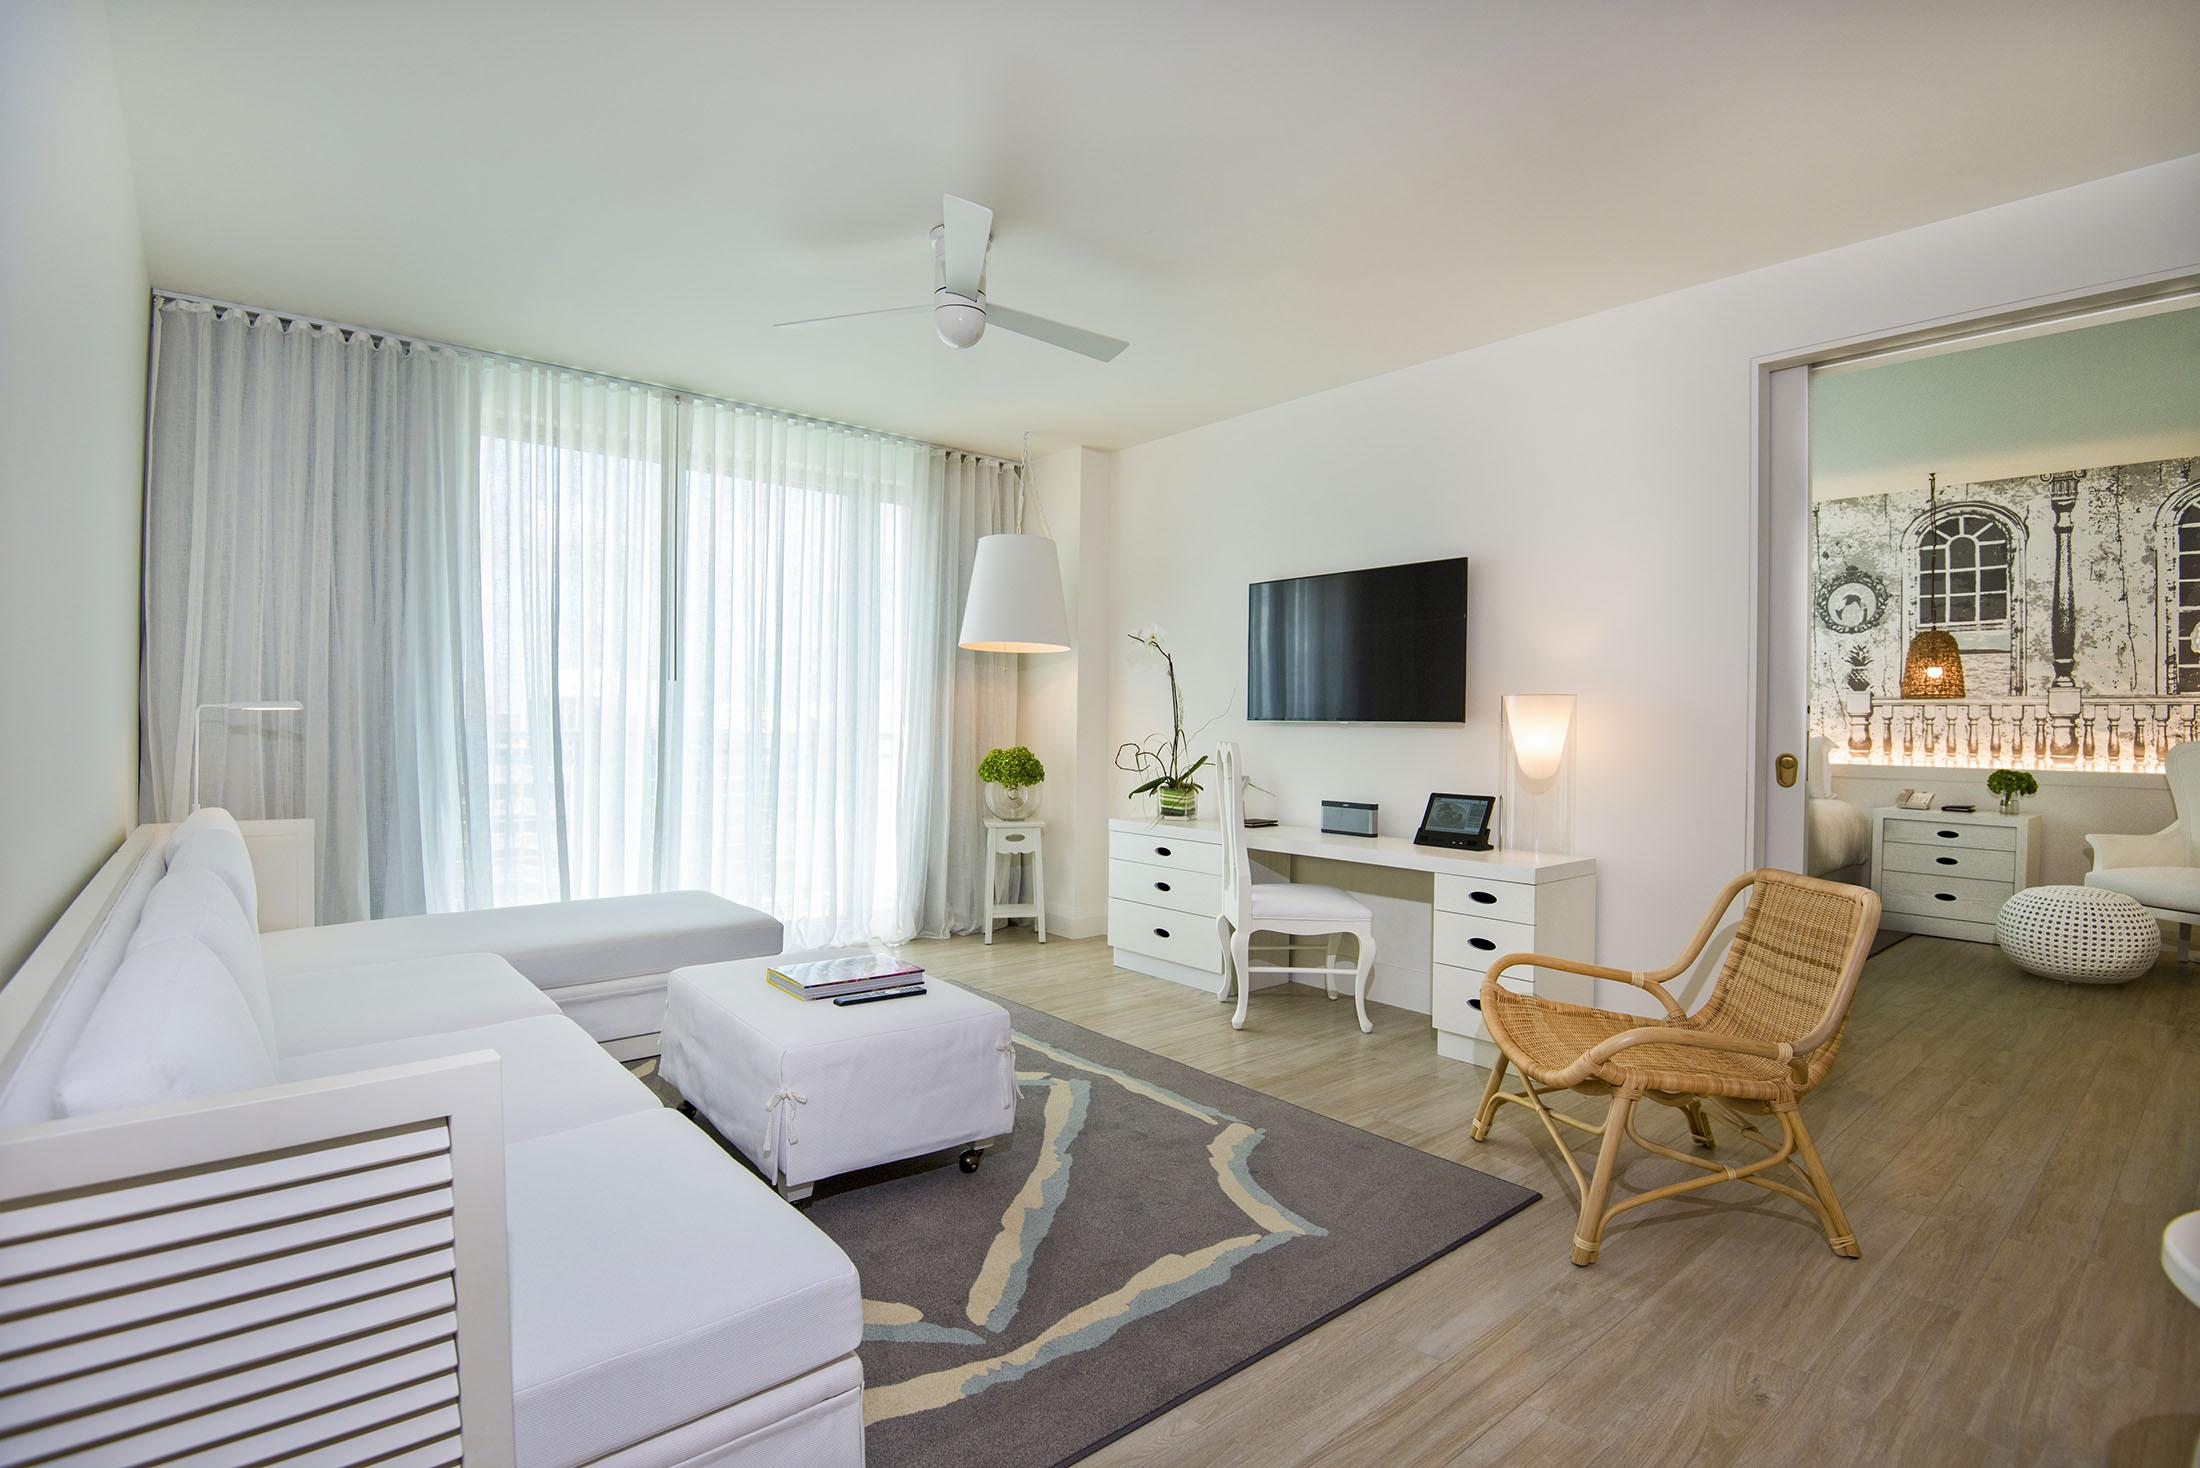 A living room for a hotel suite with a bedroom in the background.